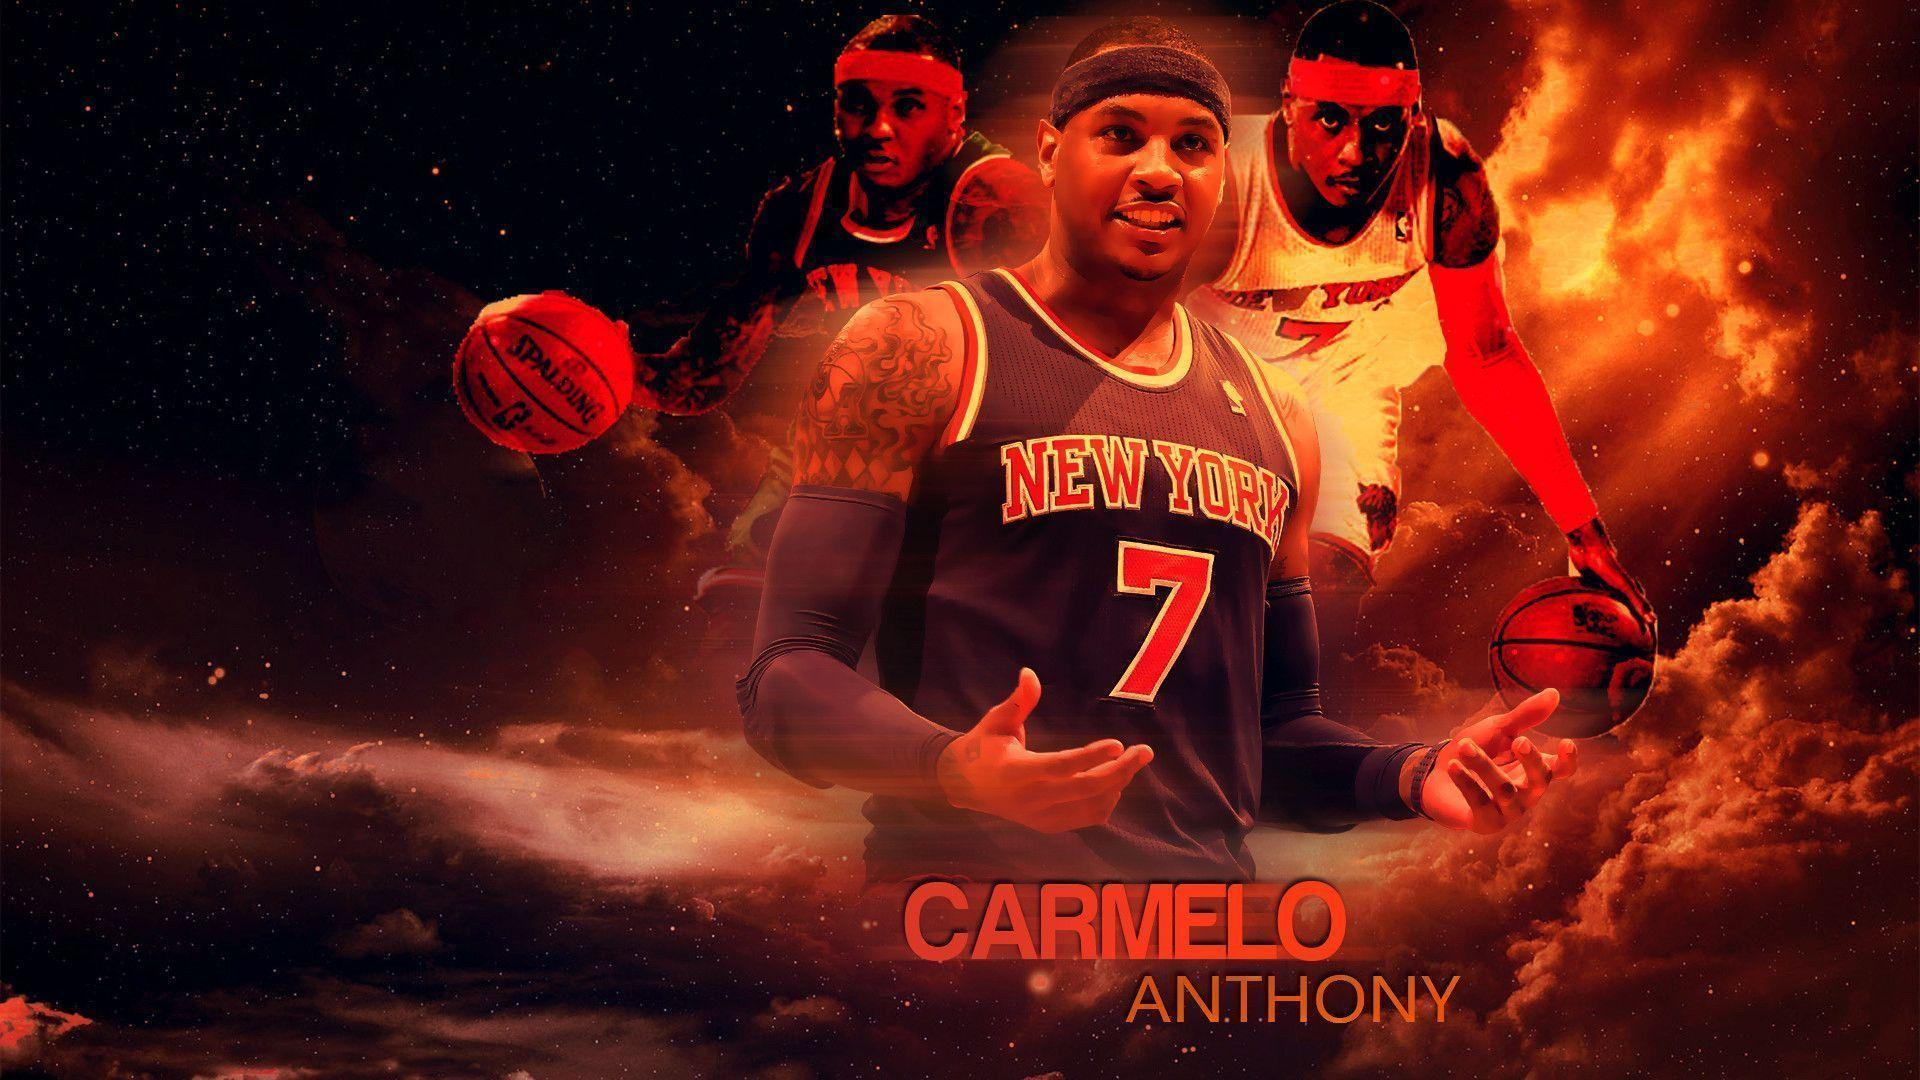 Carmelo Anthony 2014 Wallpapers by RicardoDosSantos